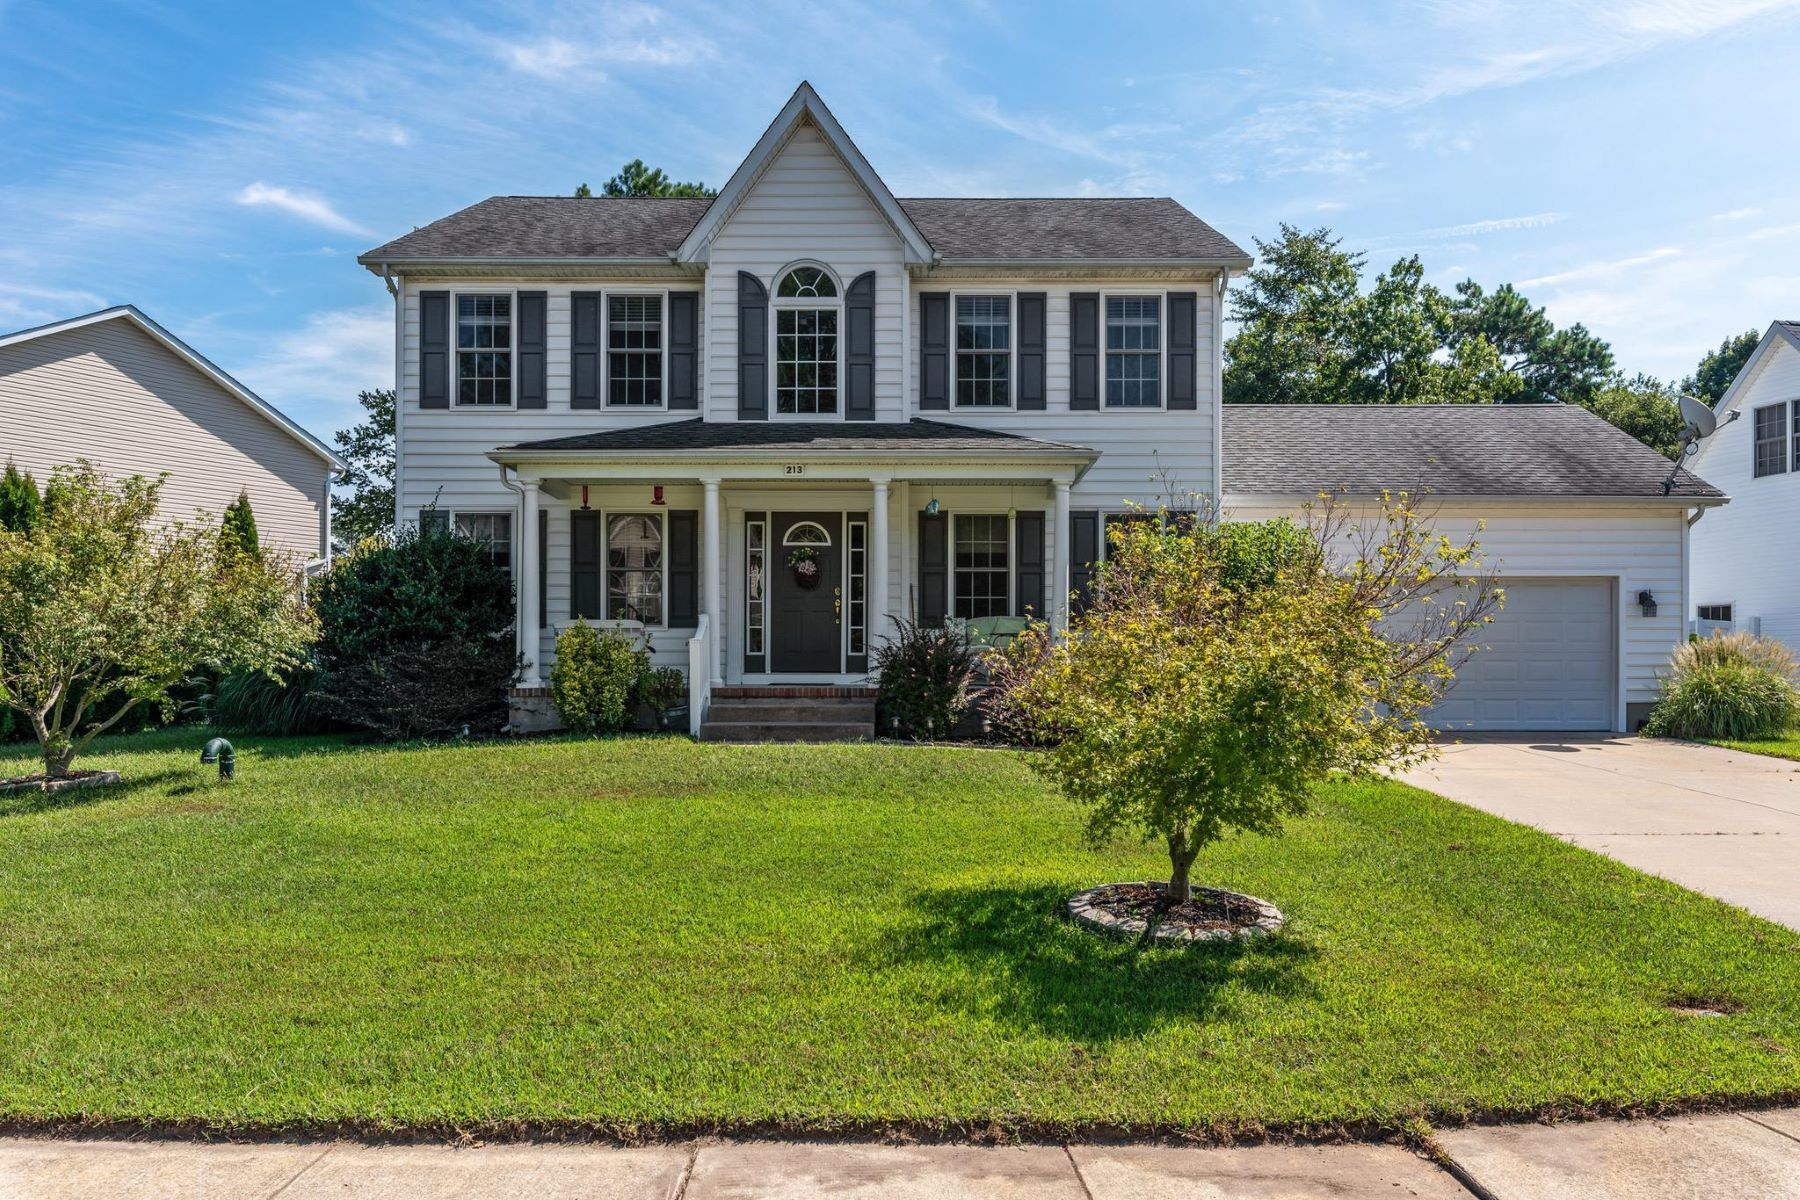 Single Family Homes for Sale at 213 Caspian Dr Grasonville, Maryland 21638 United States